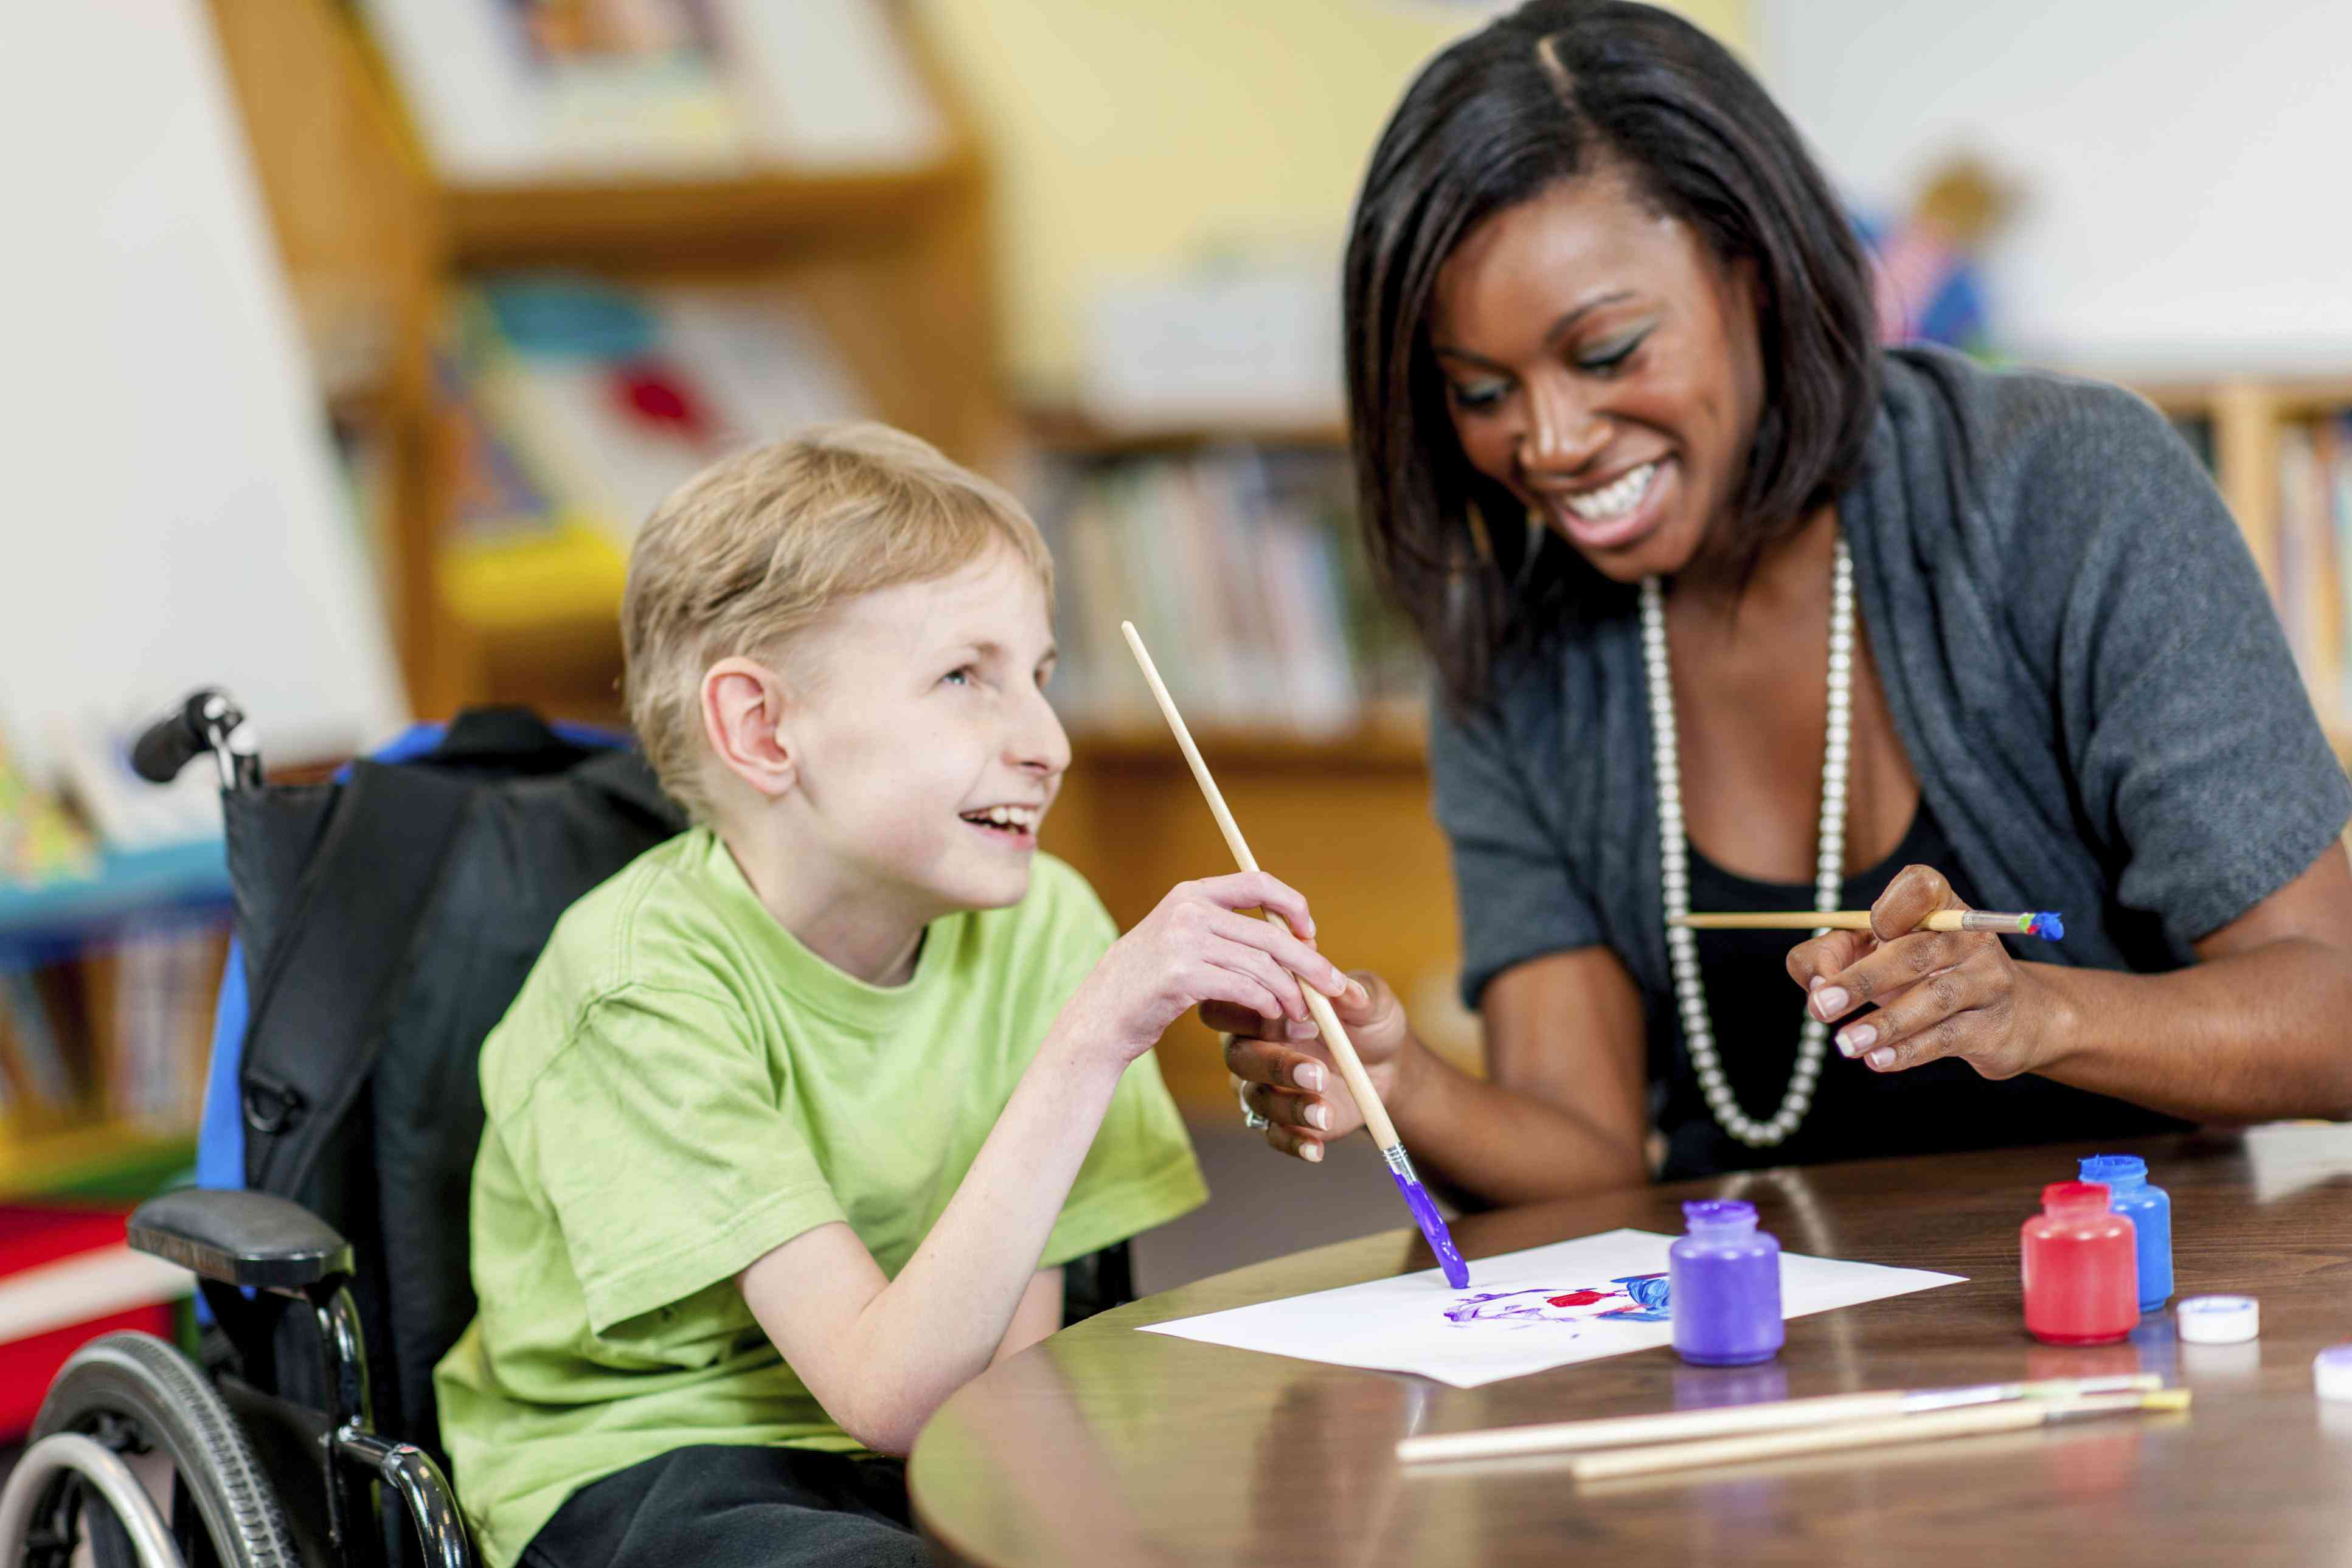 Special needs boy painting with help from an adult